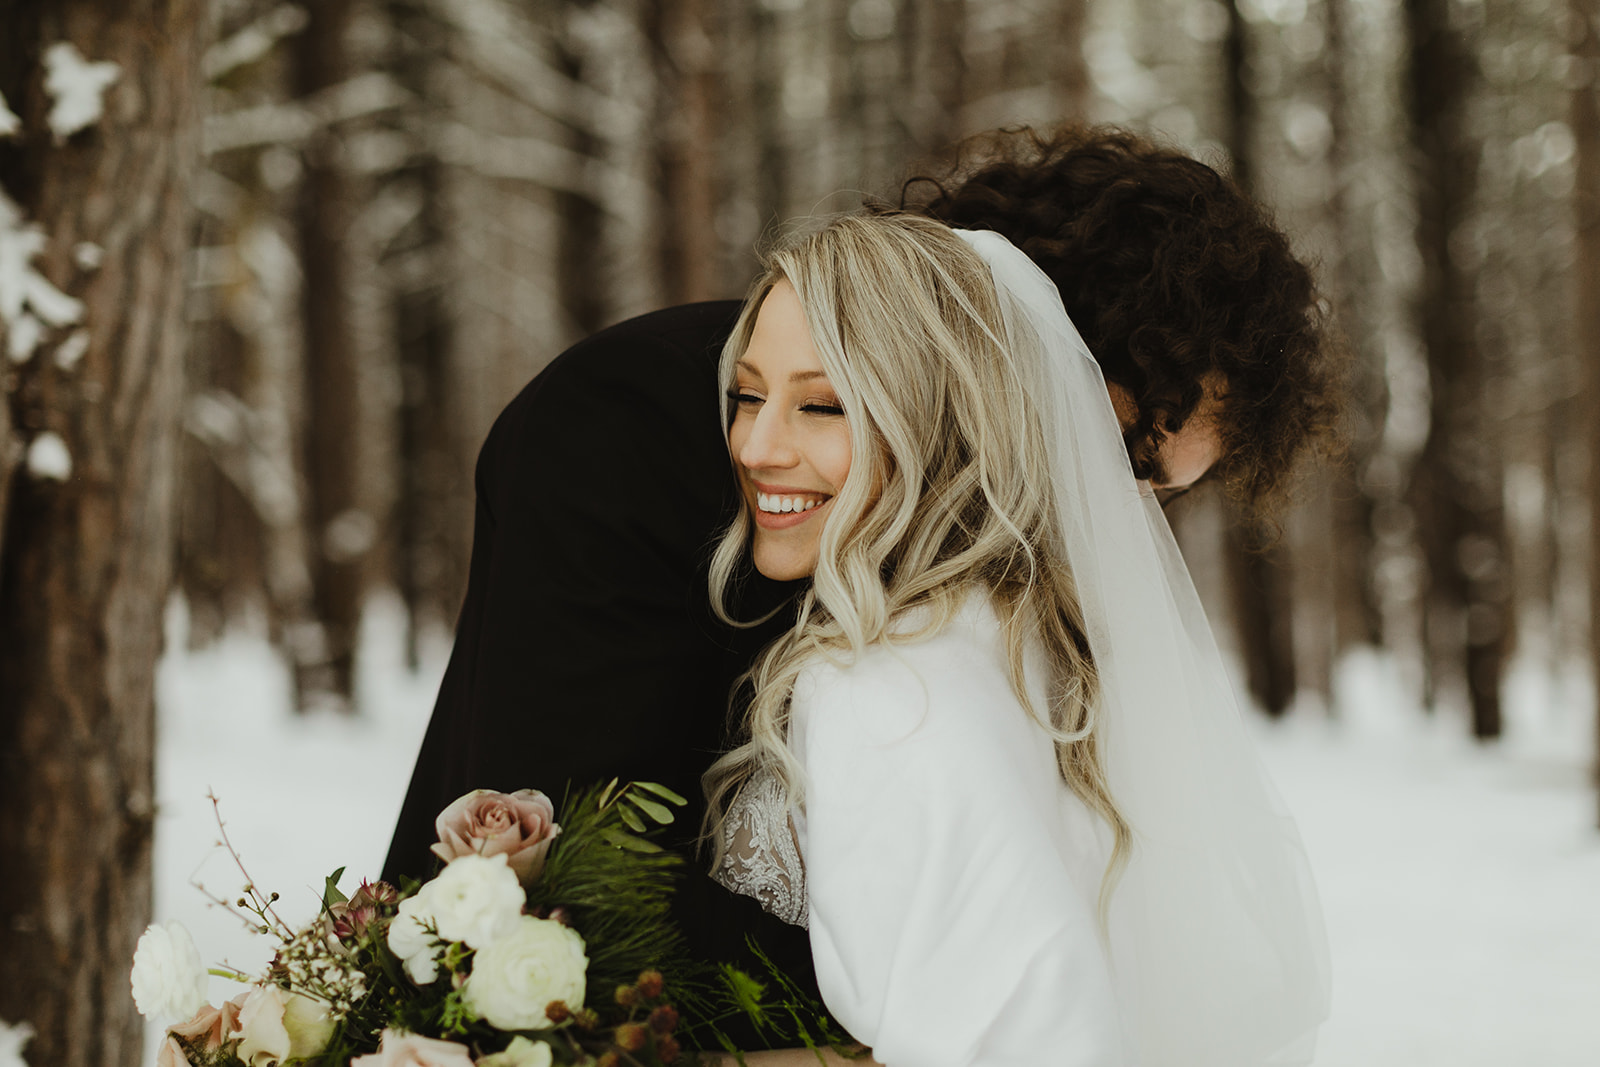 A bride and groom hugging after their Grand Rapids, Michigan wedding